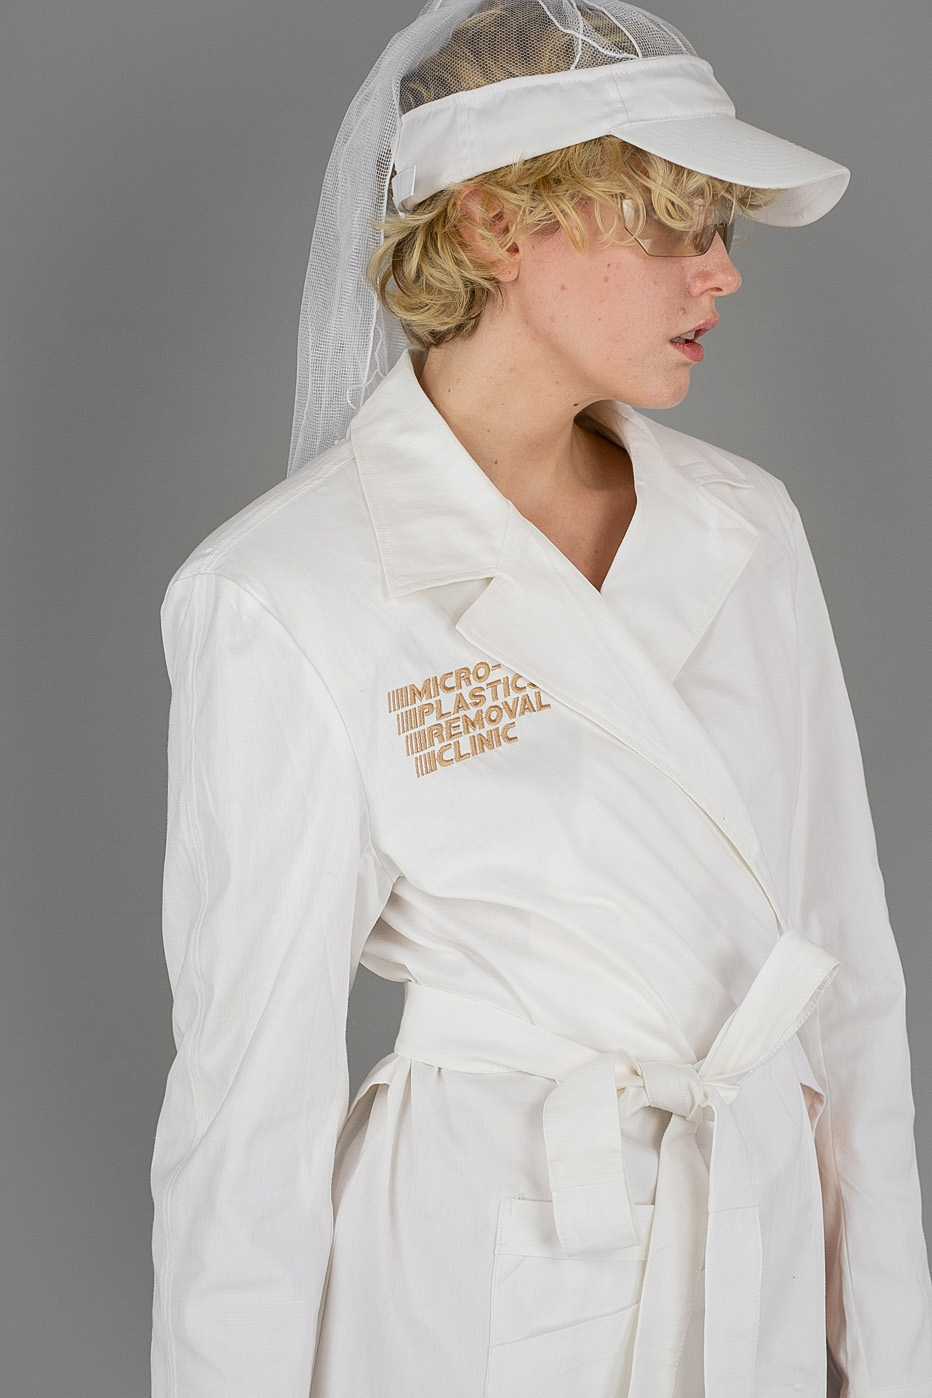 Removal Clinic Jacket 10